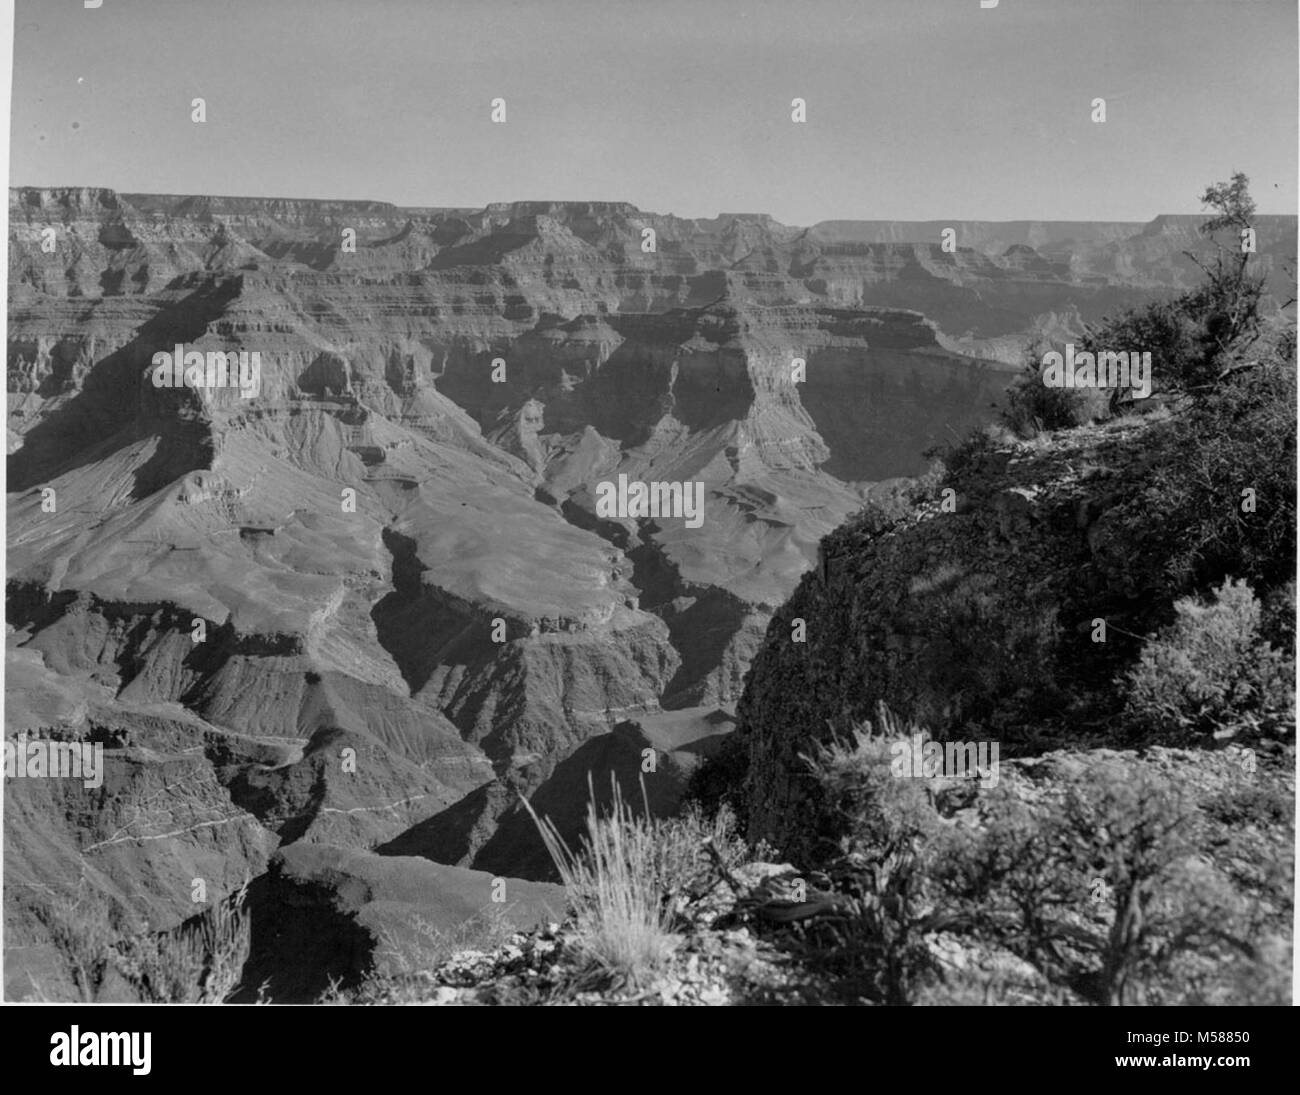 Grand Canyon Historic. LOOKING EAST FROM HAVASUPAI POINT.  NOTE GRANITIC INTRUSION SIN INNER CANYON WALL FORMATION. - Stock Image